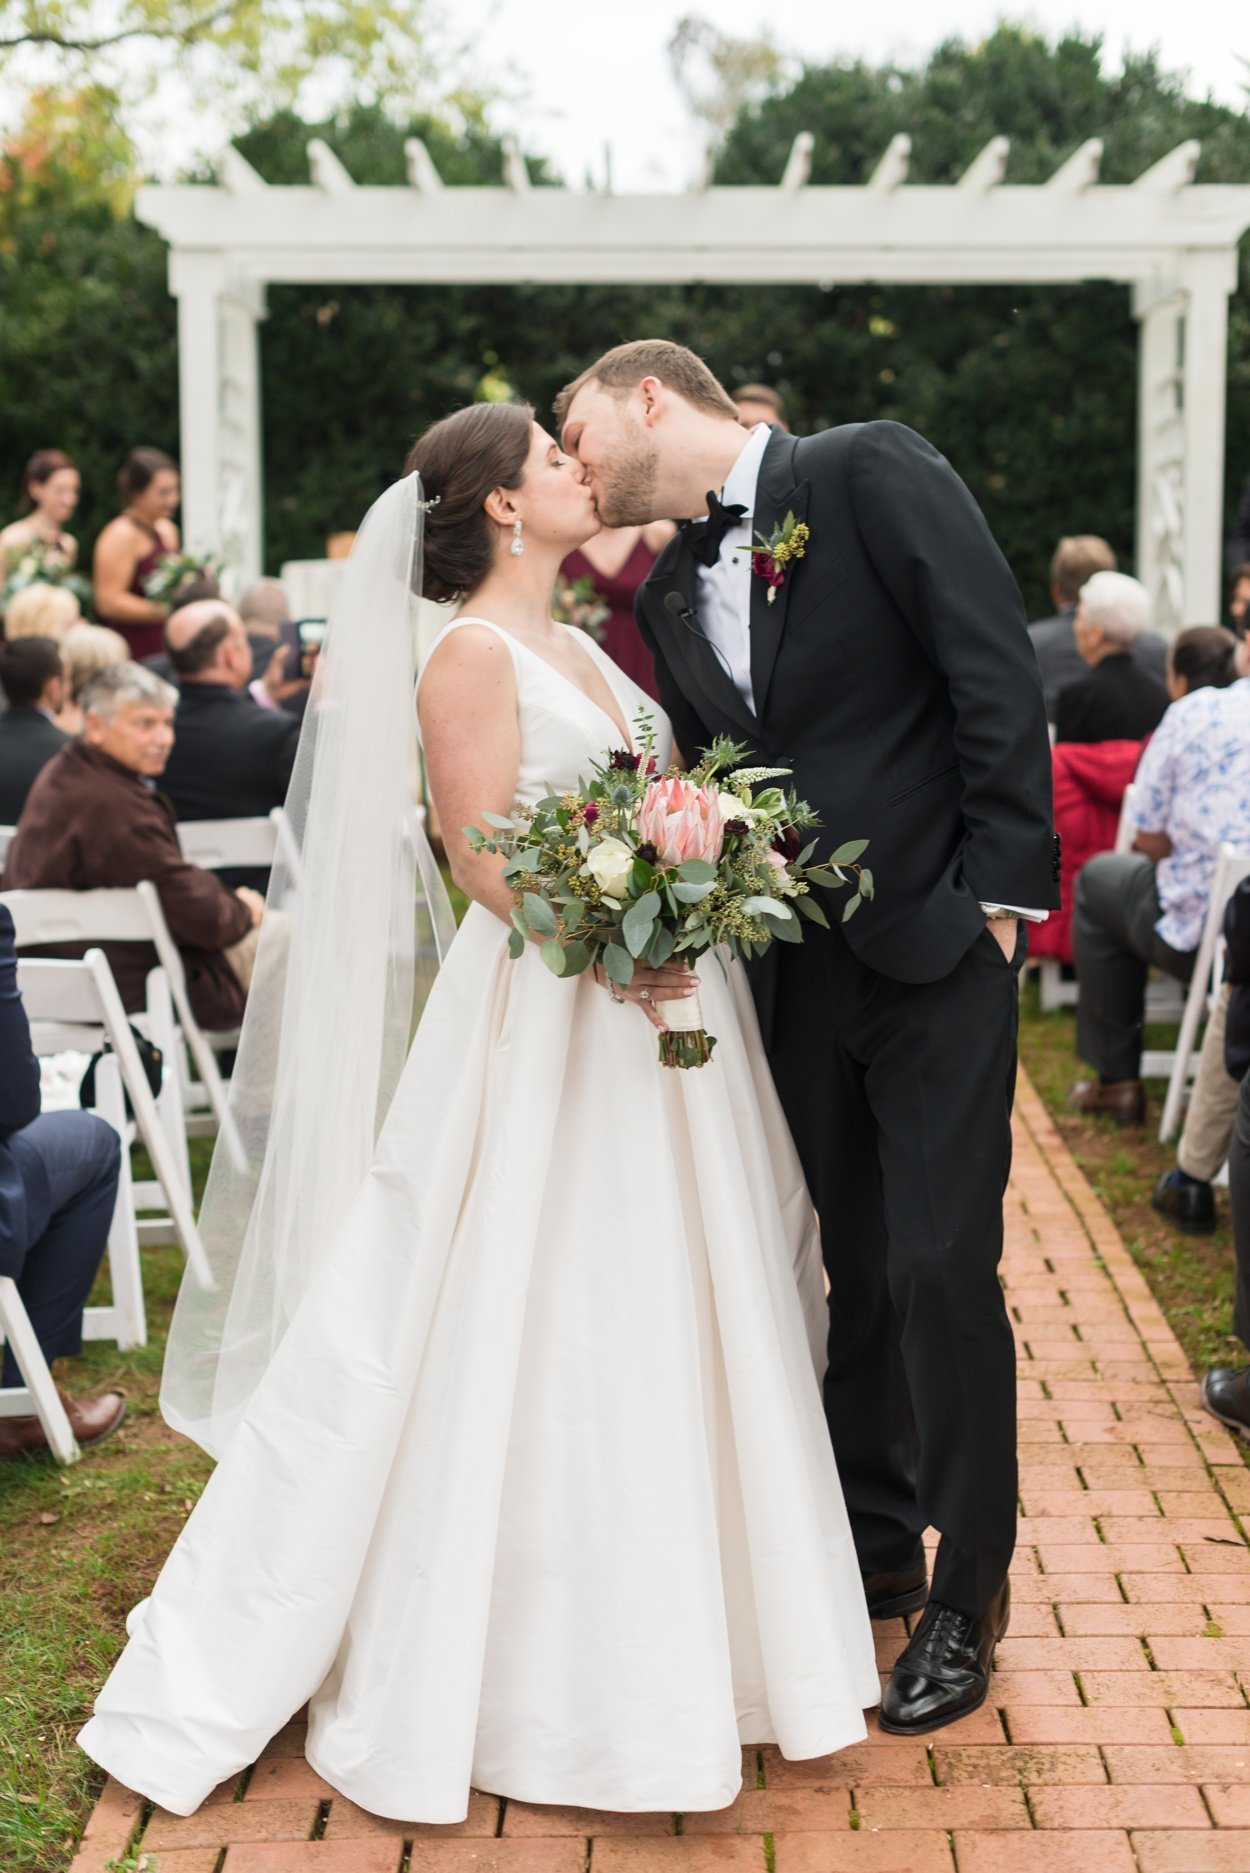 Kimberly-Florence-Photography-Eastern-Shore-MD-Wedding-Photographer-St-Michaels-MD_0612